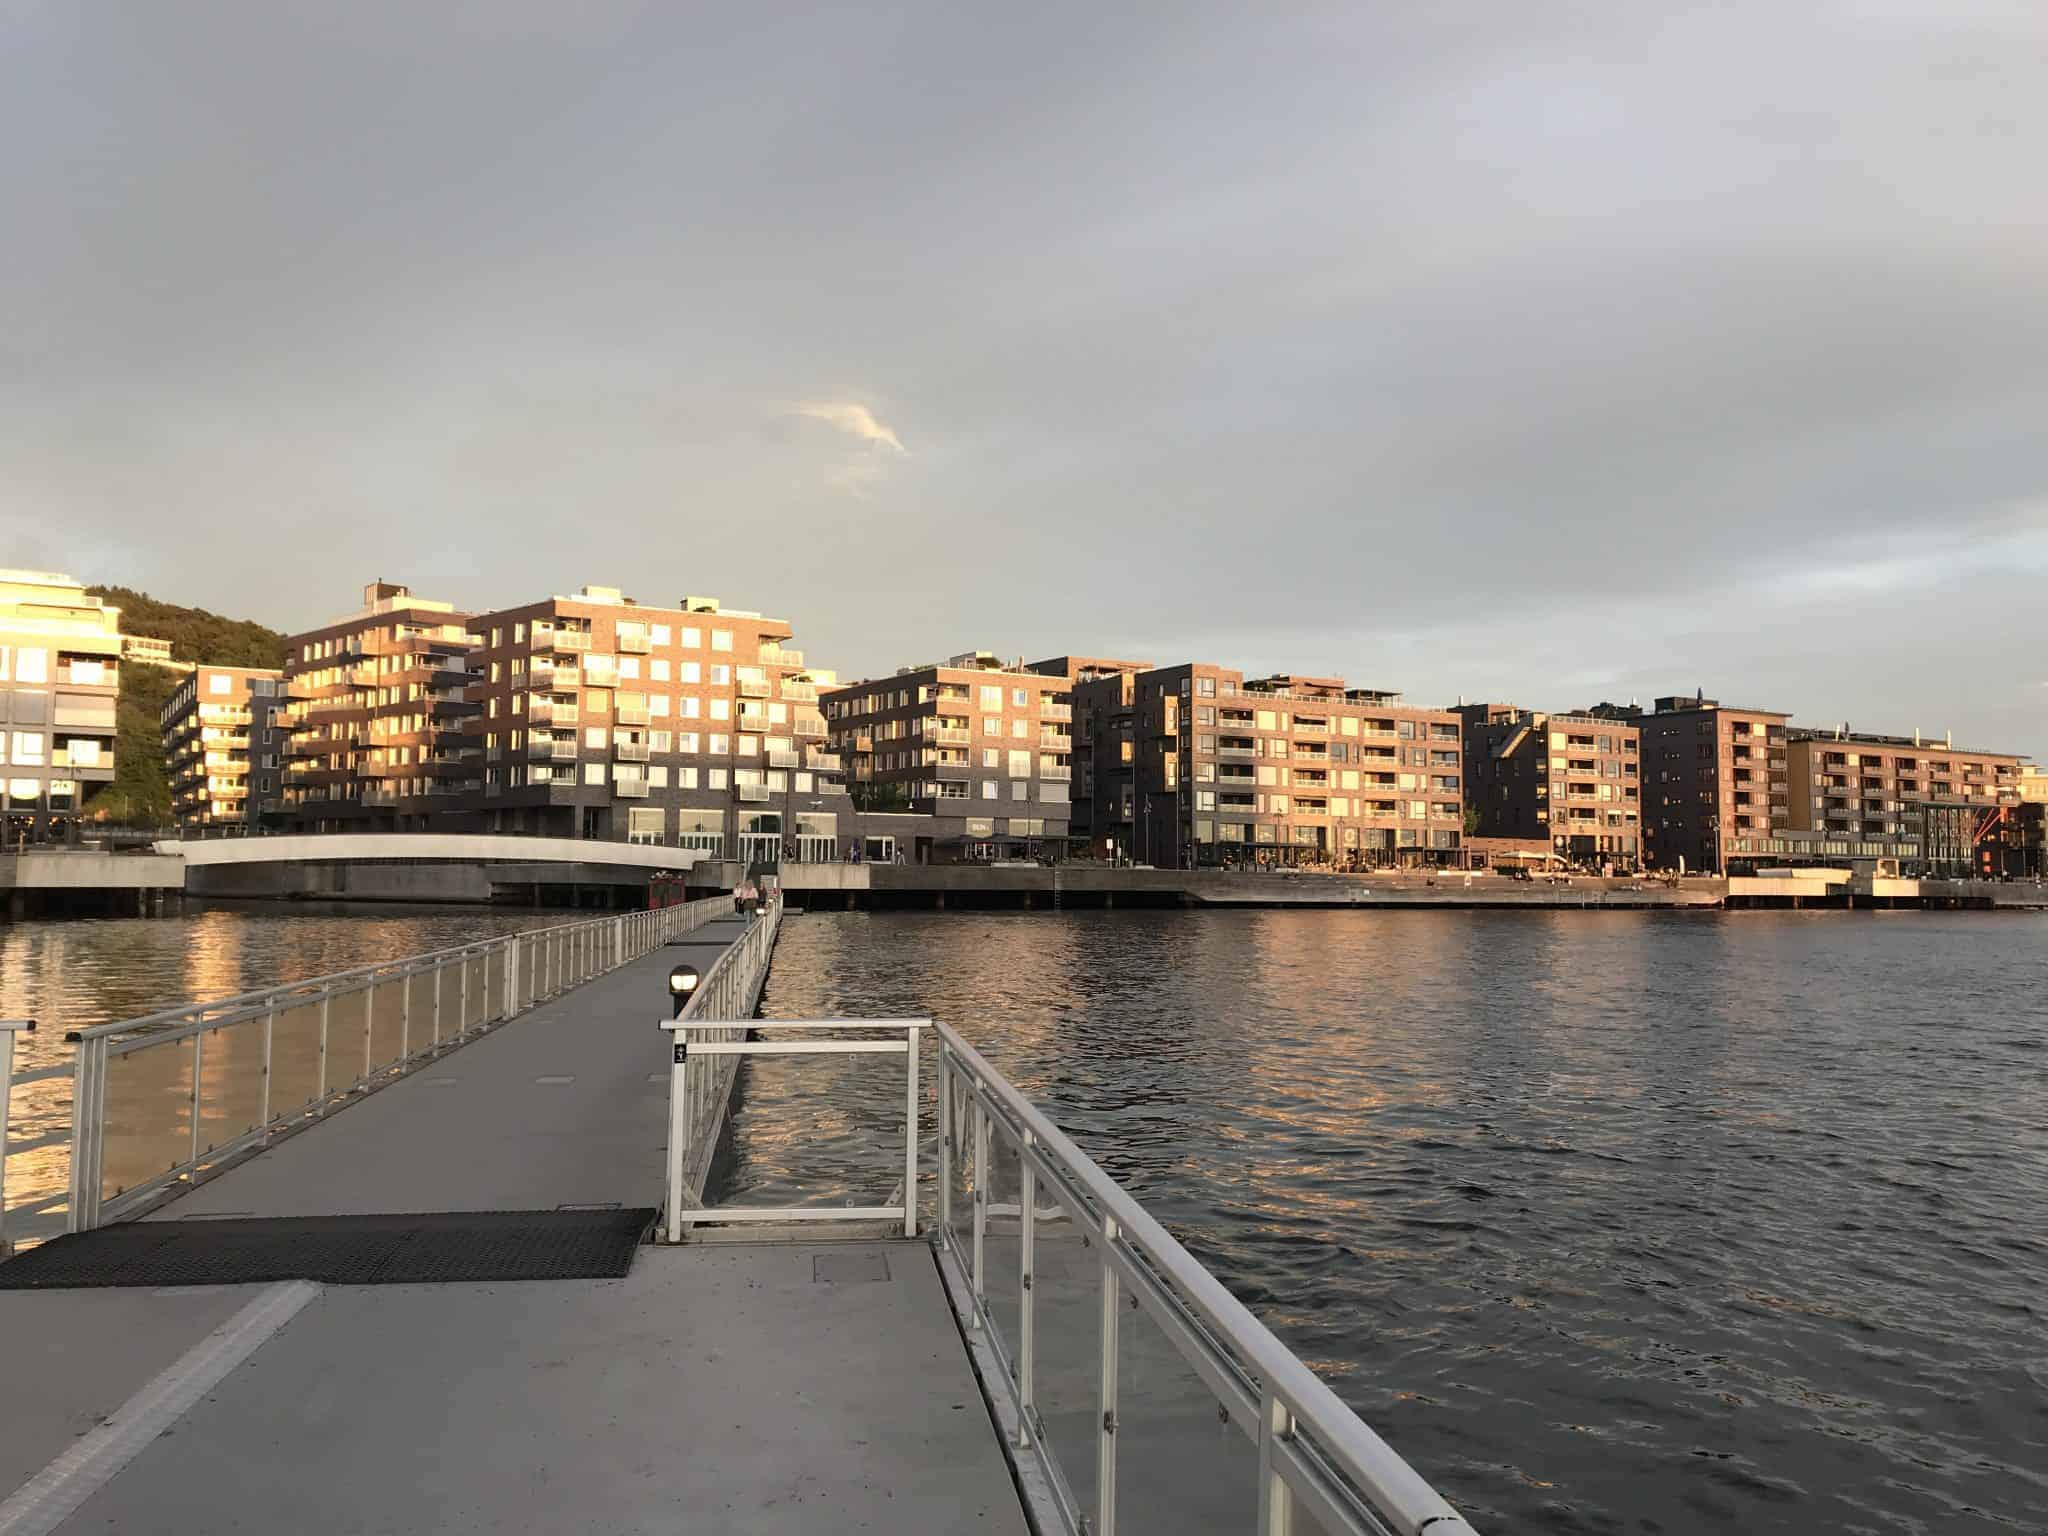 Oslo Norway, best time to visit Oslo, Oslo itinerary, things to do in Oslo